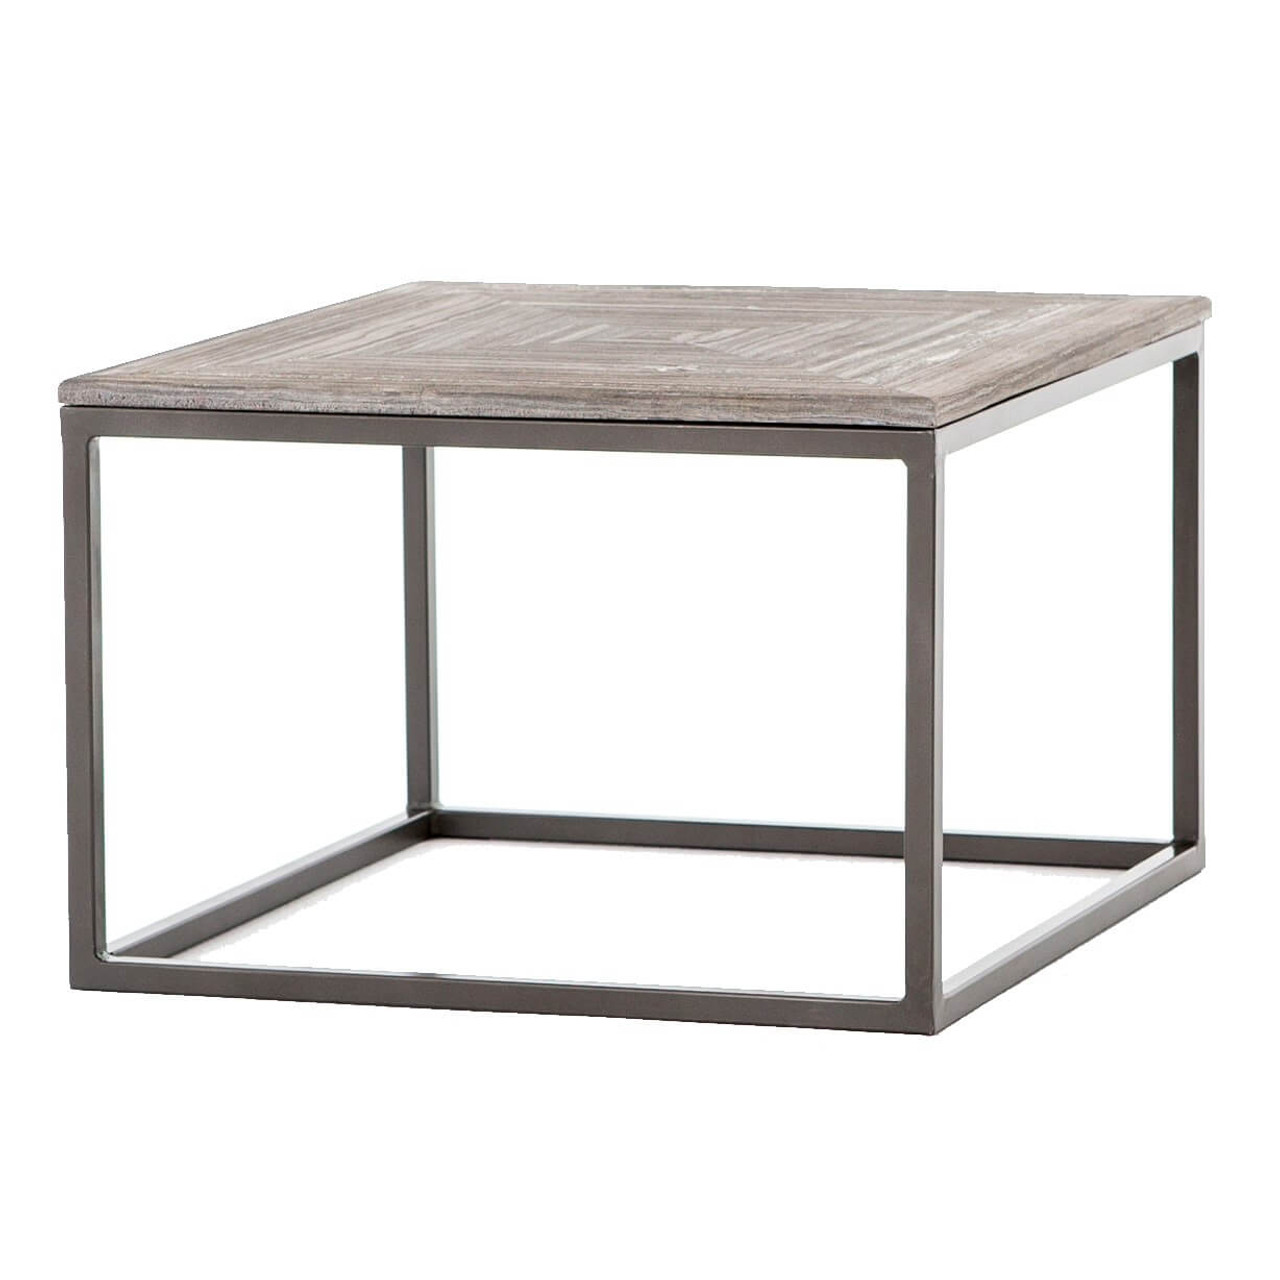 Extra Large Stone Coffee Table: Linden Industrial Iron And Marble Top Square Coffee Table